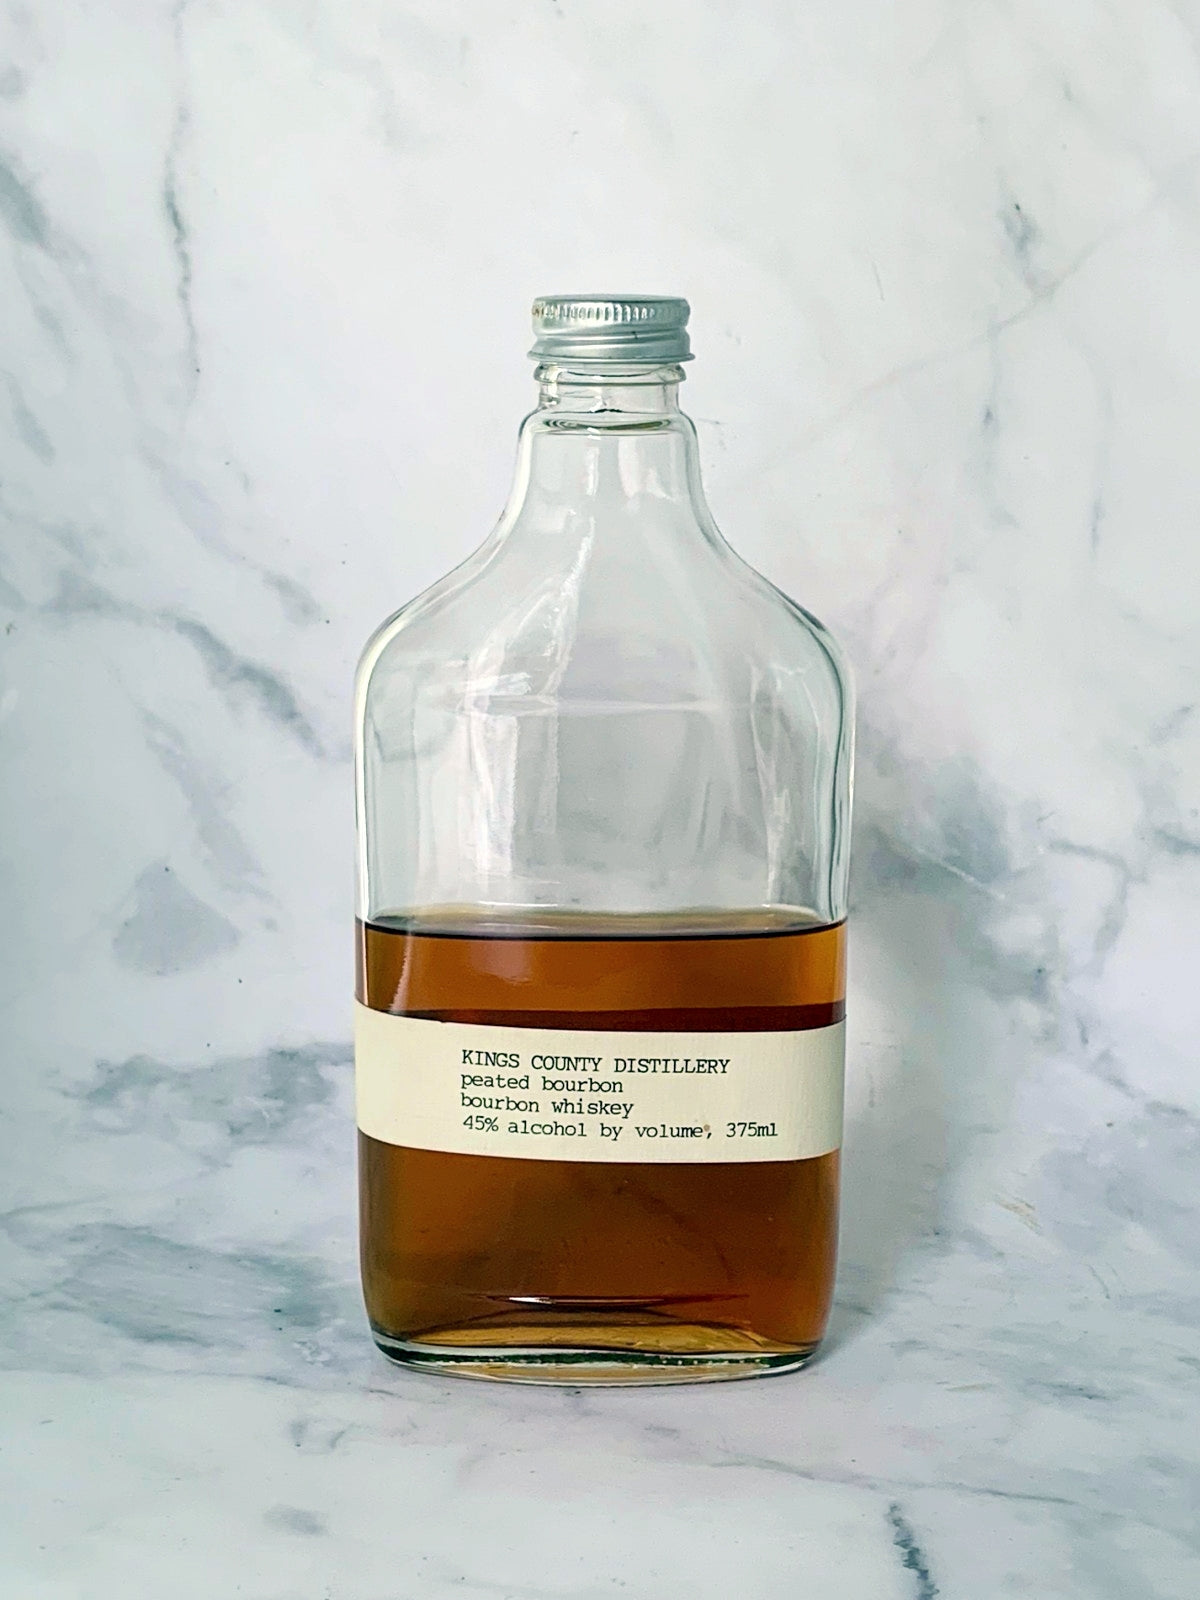 Kings County Distillery Peated Bourbon Whiskey (50ml serve)